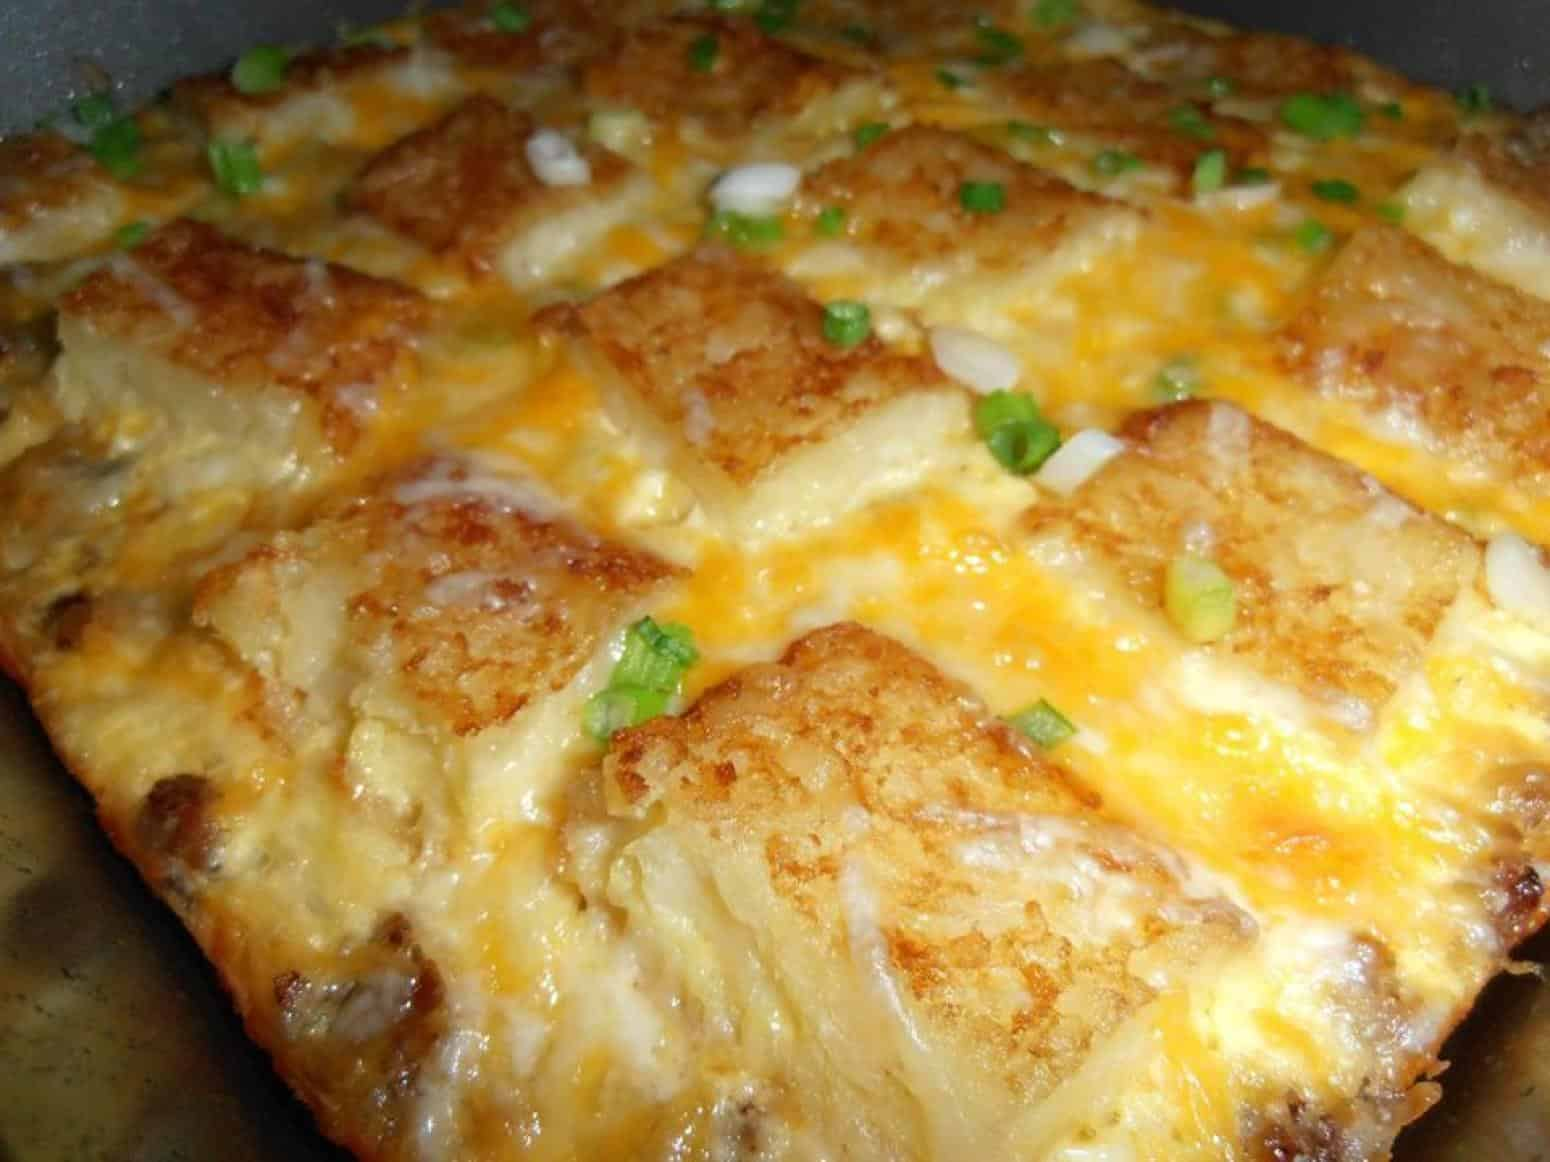 Hashbrown, egg, and cheese breakfast casserole